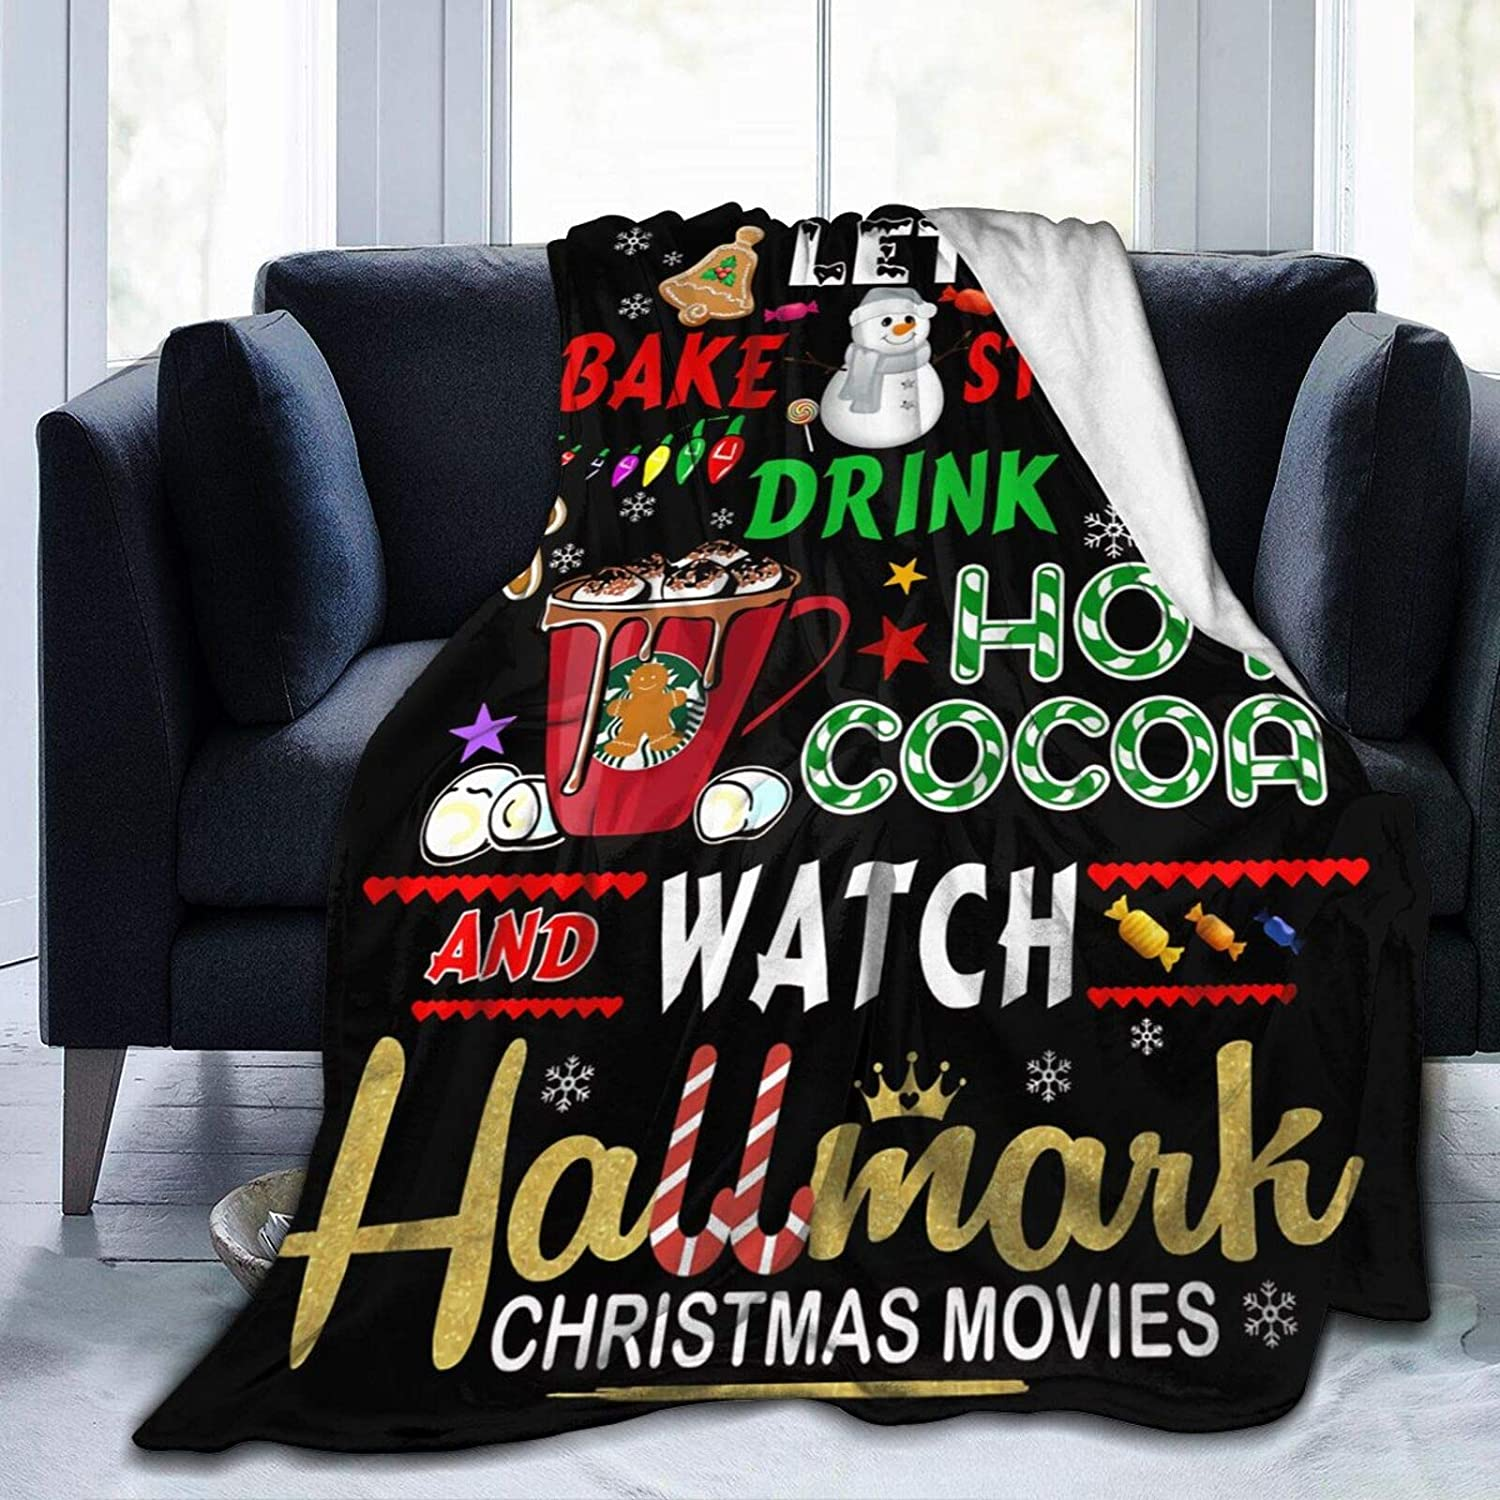 Sale Lets Bake Stuff Drink Hot Cocoa Movies S Christmas High quality new Blanket Watch